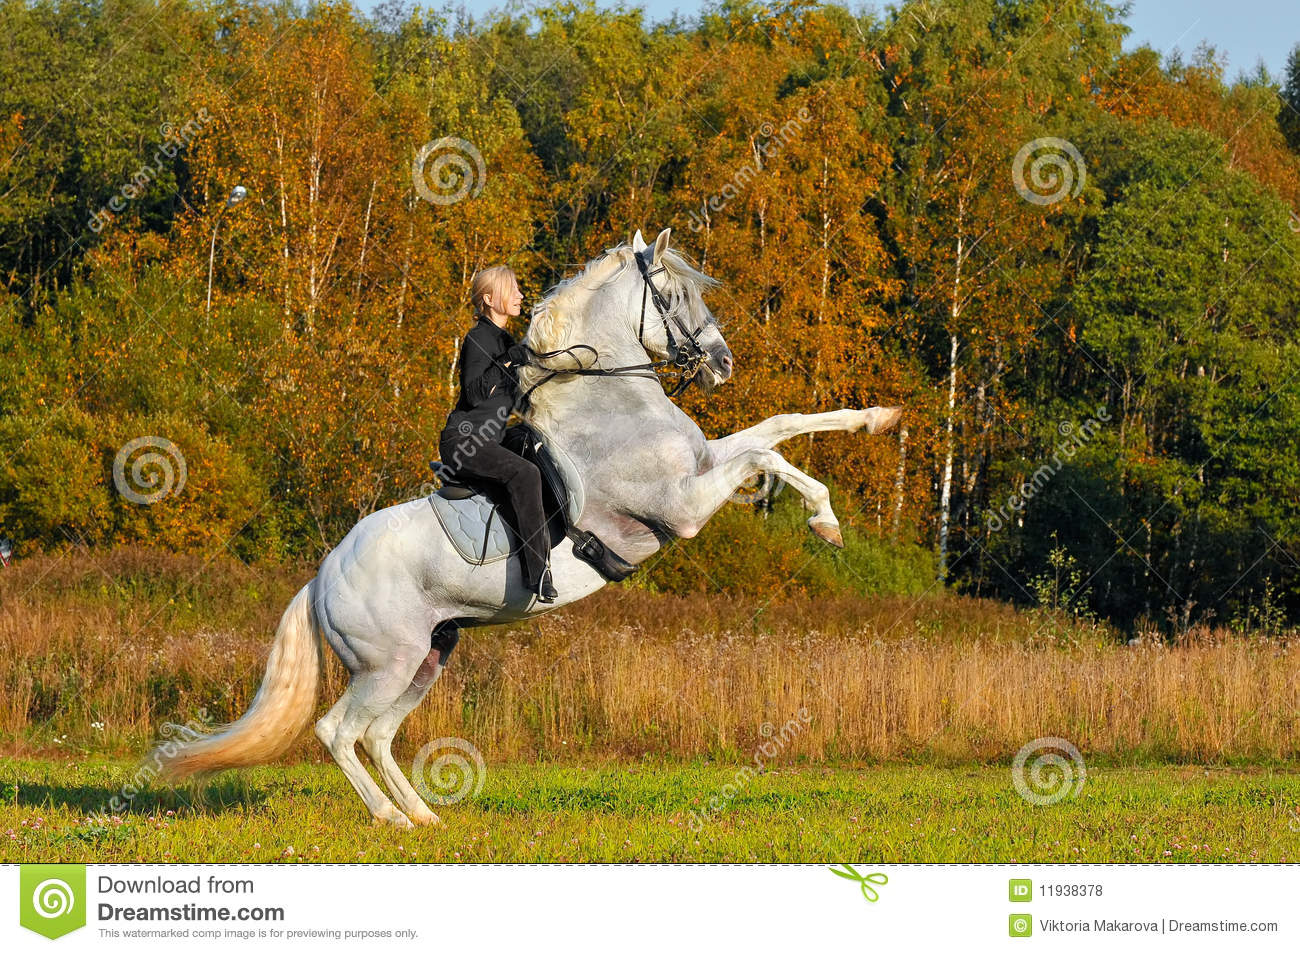 Woman on white horse in autumn